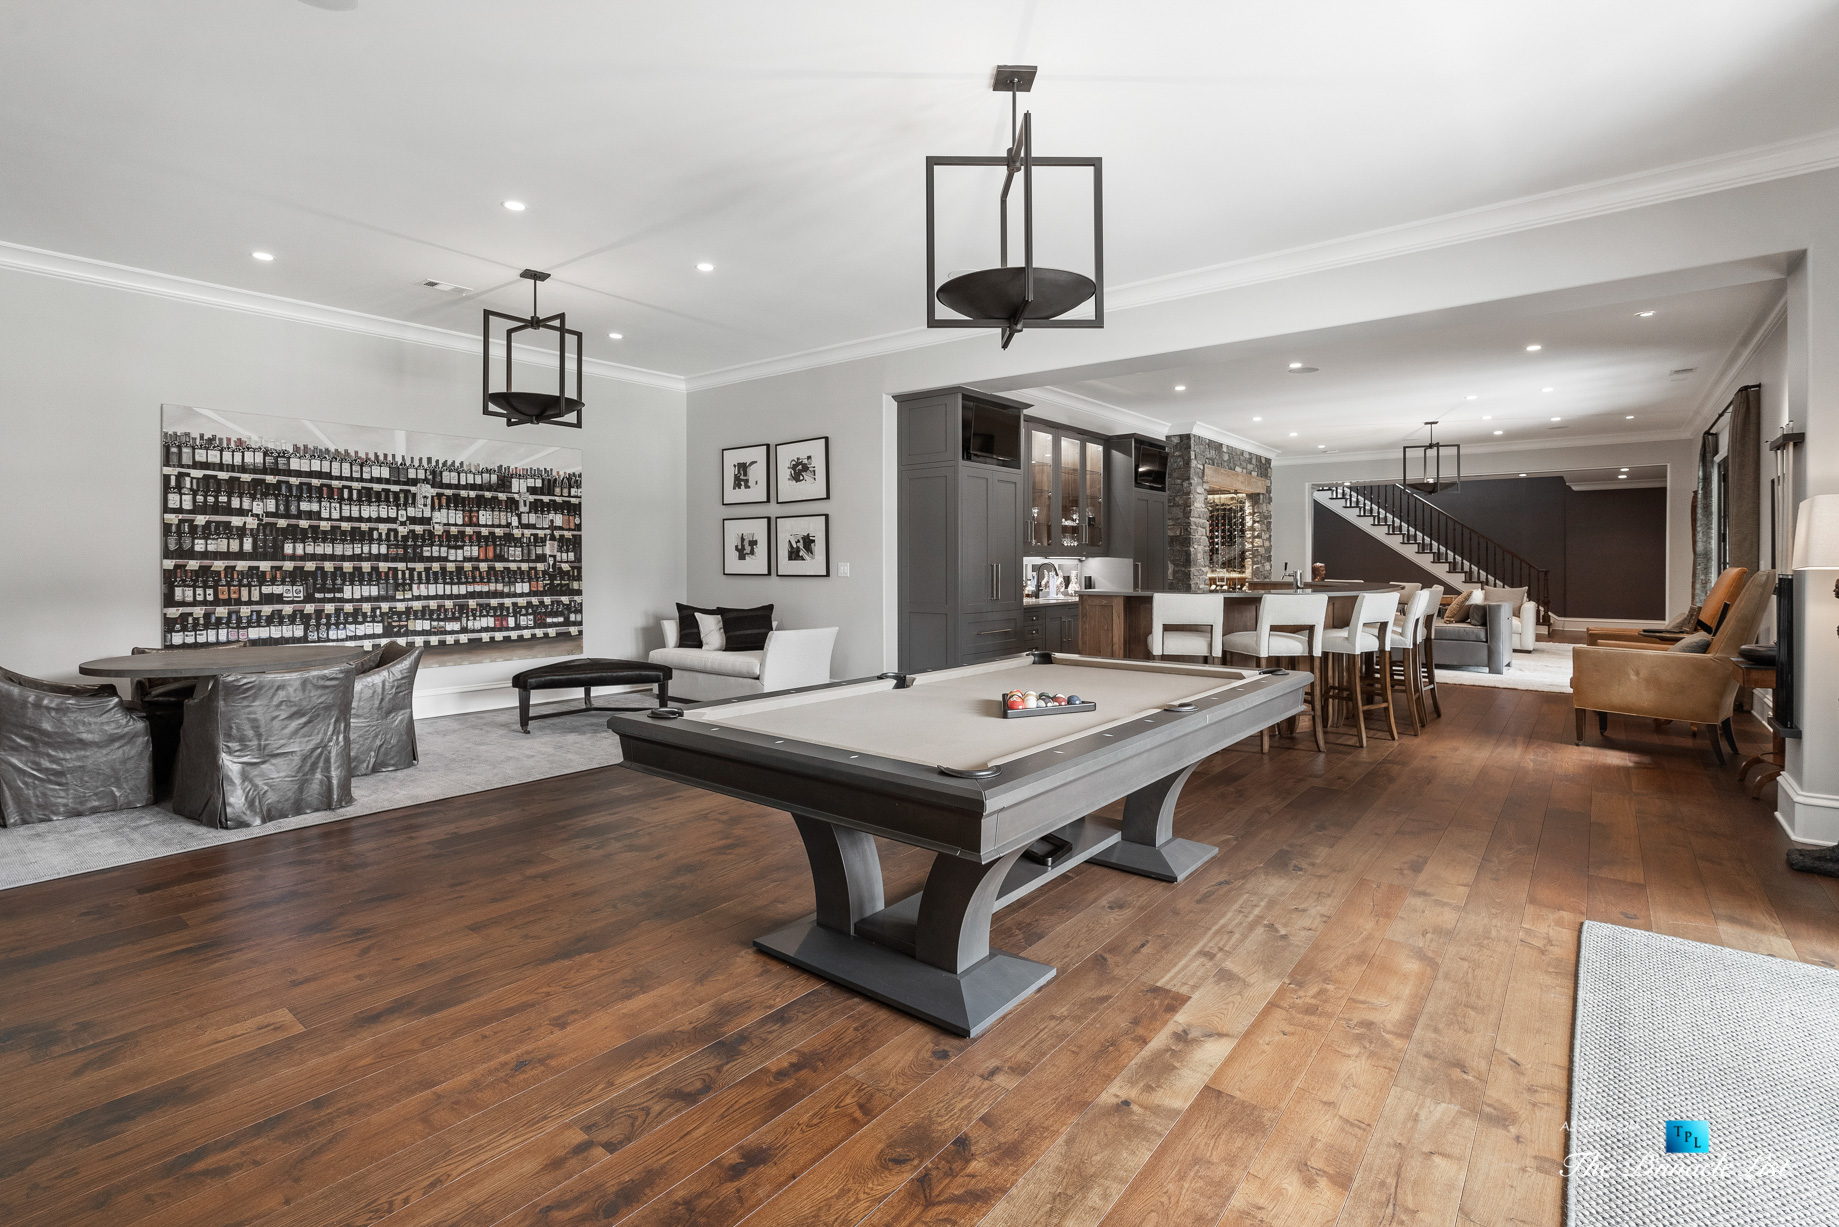 1150 W Garmon Rd, Atlanta, GA, USA - Recreation Room with Pool Table - Luxury Real Estate - Buckhead Estate Home